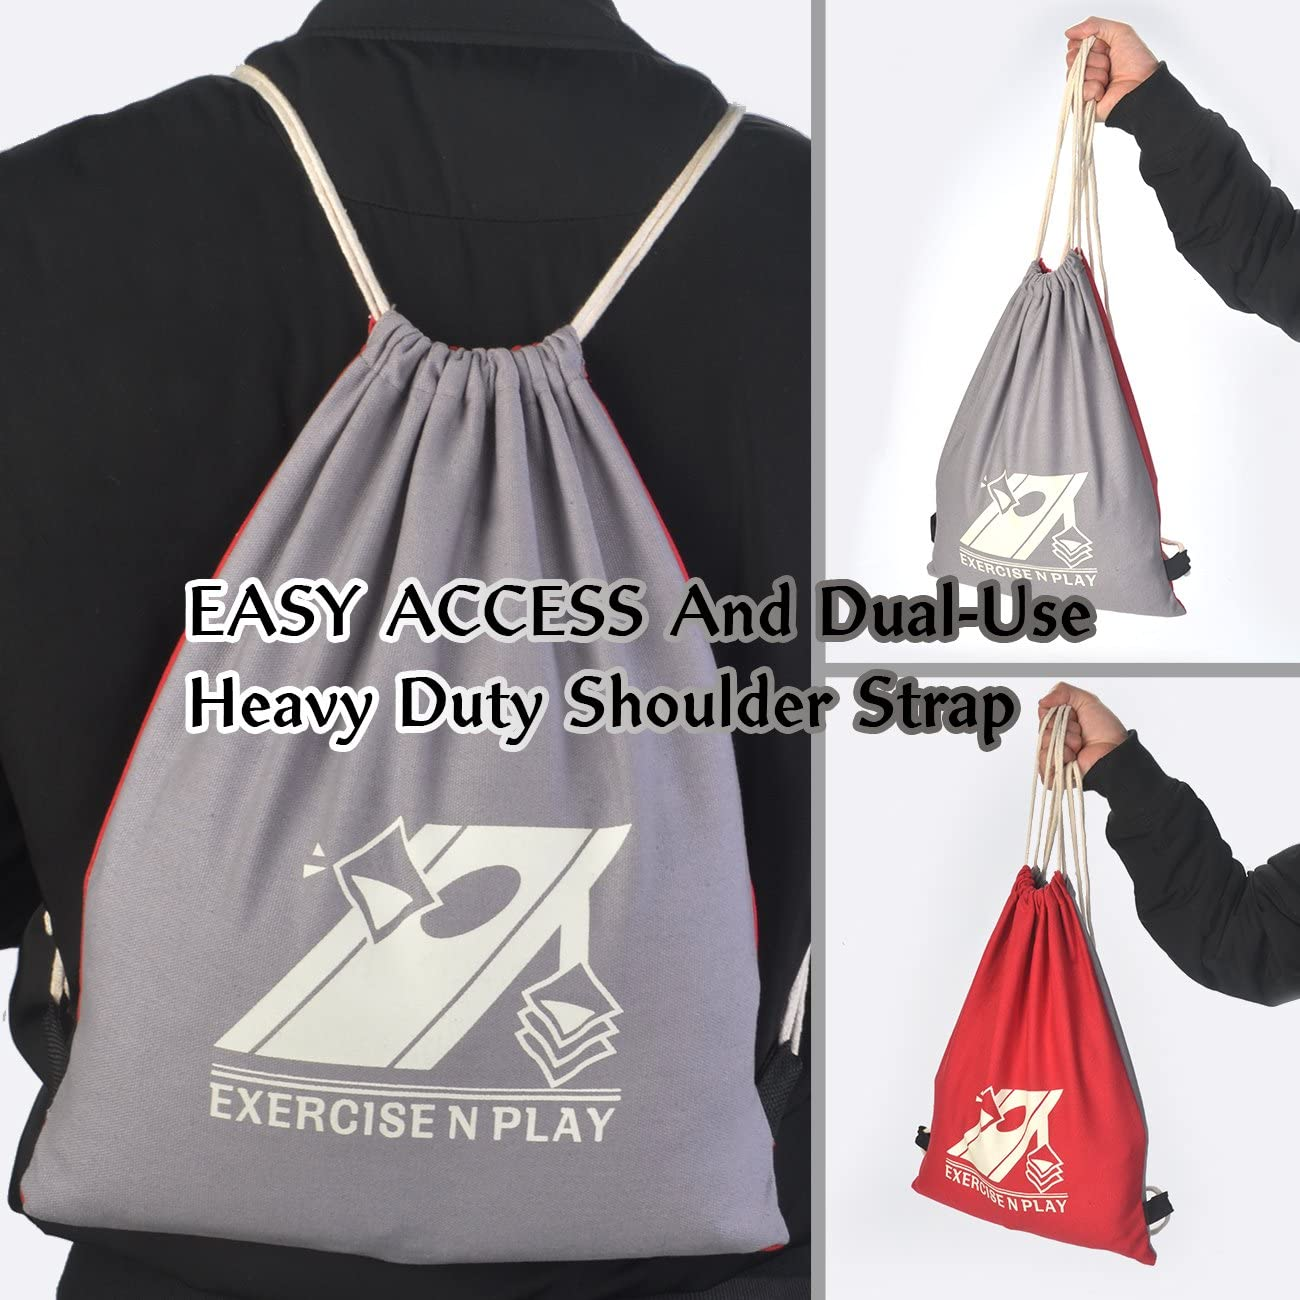 EXERCISE N PLAY Weather Resistant Official Regulation Cornhole Bags Set of 8 for Bean Bag Toss Games Includes Tote Bag